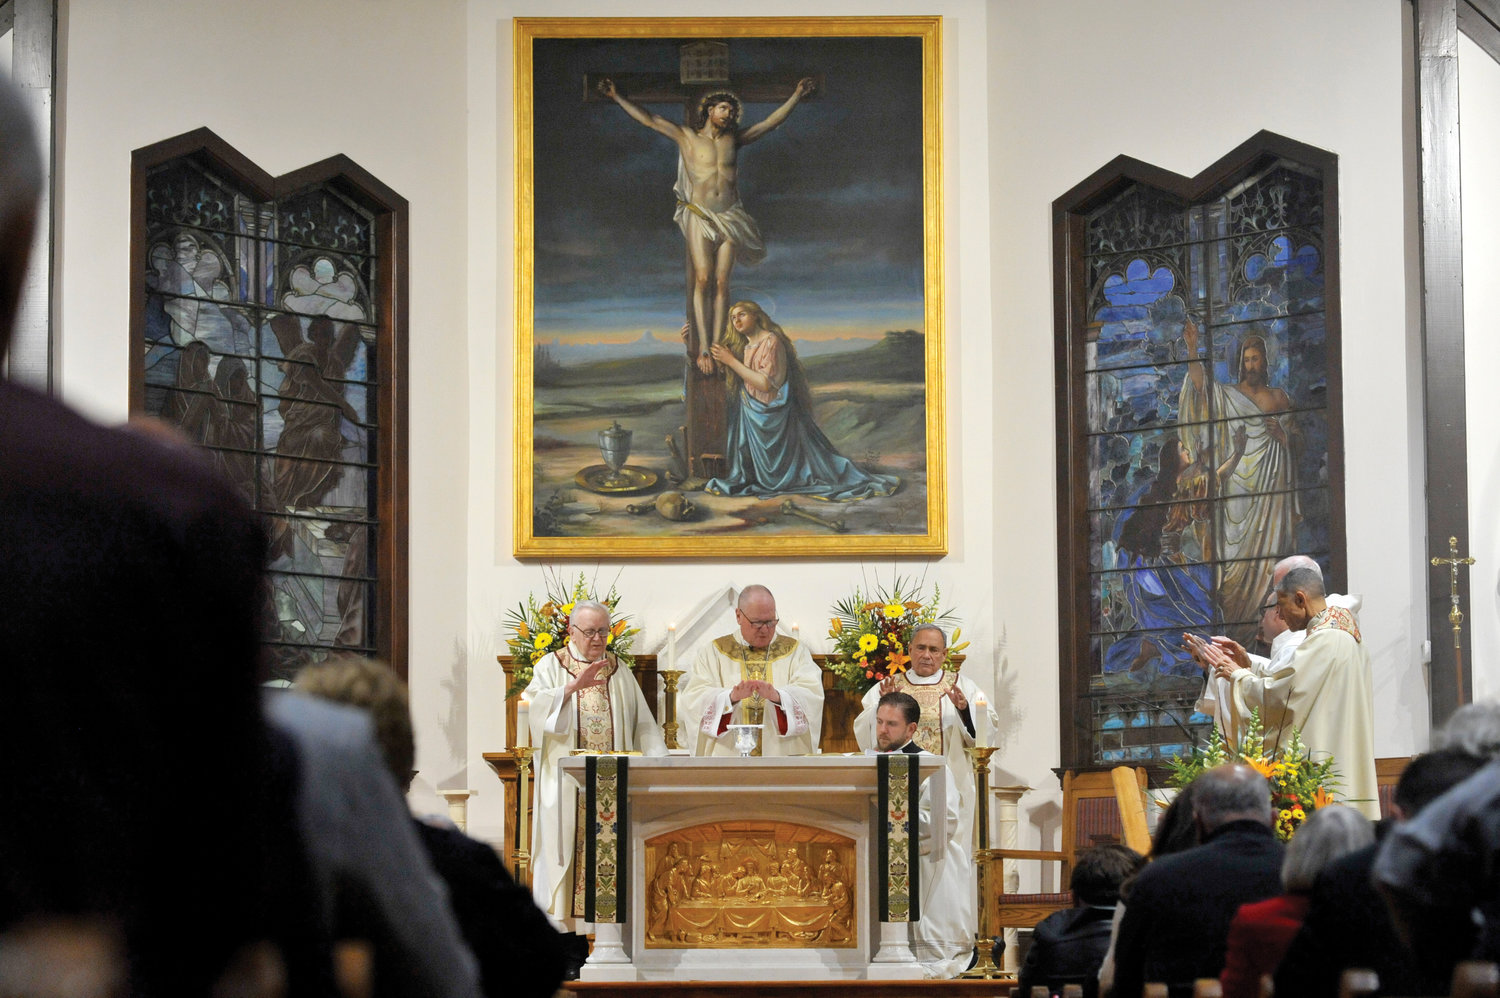 Cardinal Dolan celebrates Mass for the 125th anniversary of The Church of the Magdalene in Pocantico Hills Nov. 23. Flanking the cardinal are Msgr. Joseph Reynolds, a weekend assistant, and Father John Vigilanti, the parish administrator.